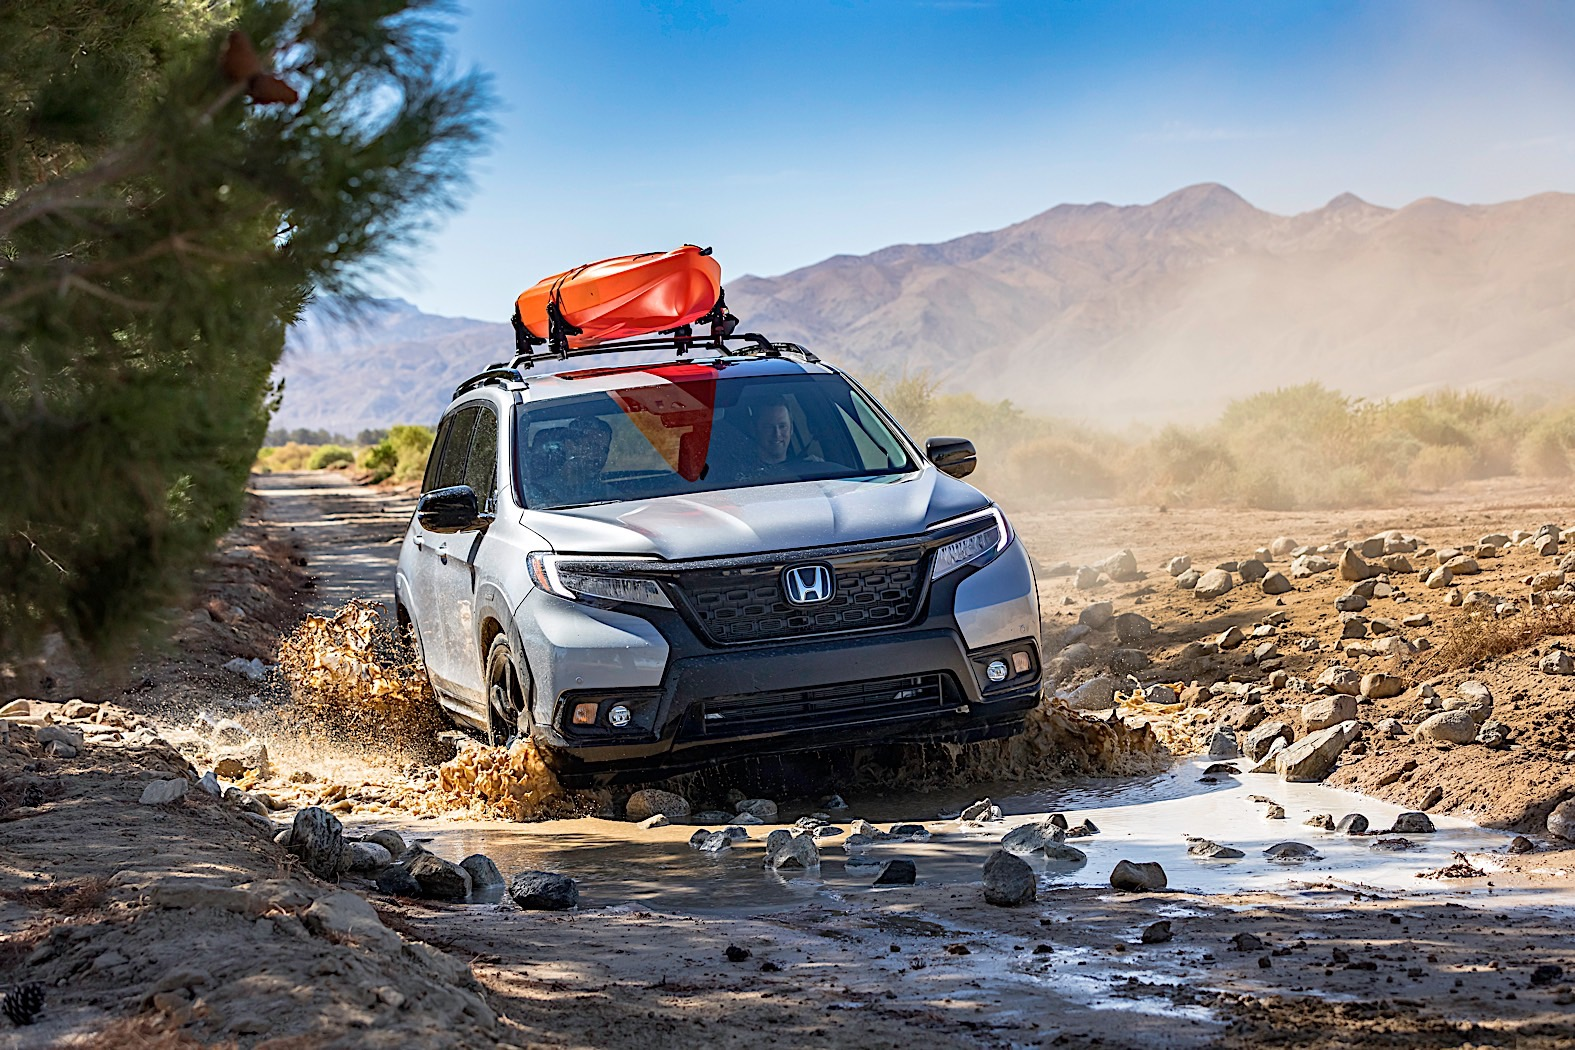 Honda Passport Is Ready For Off-Road Adventure